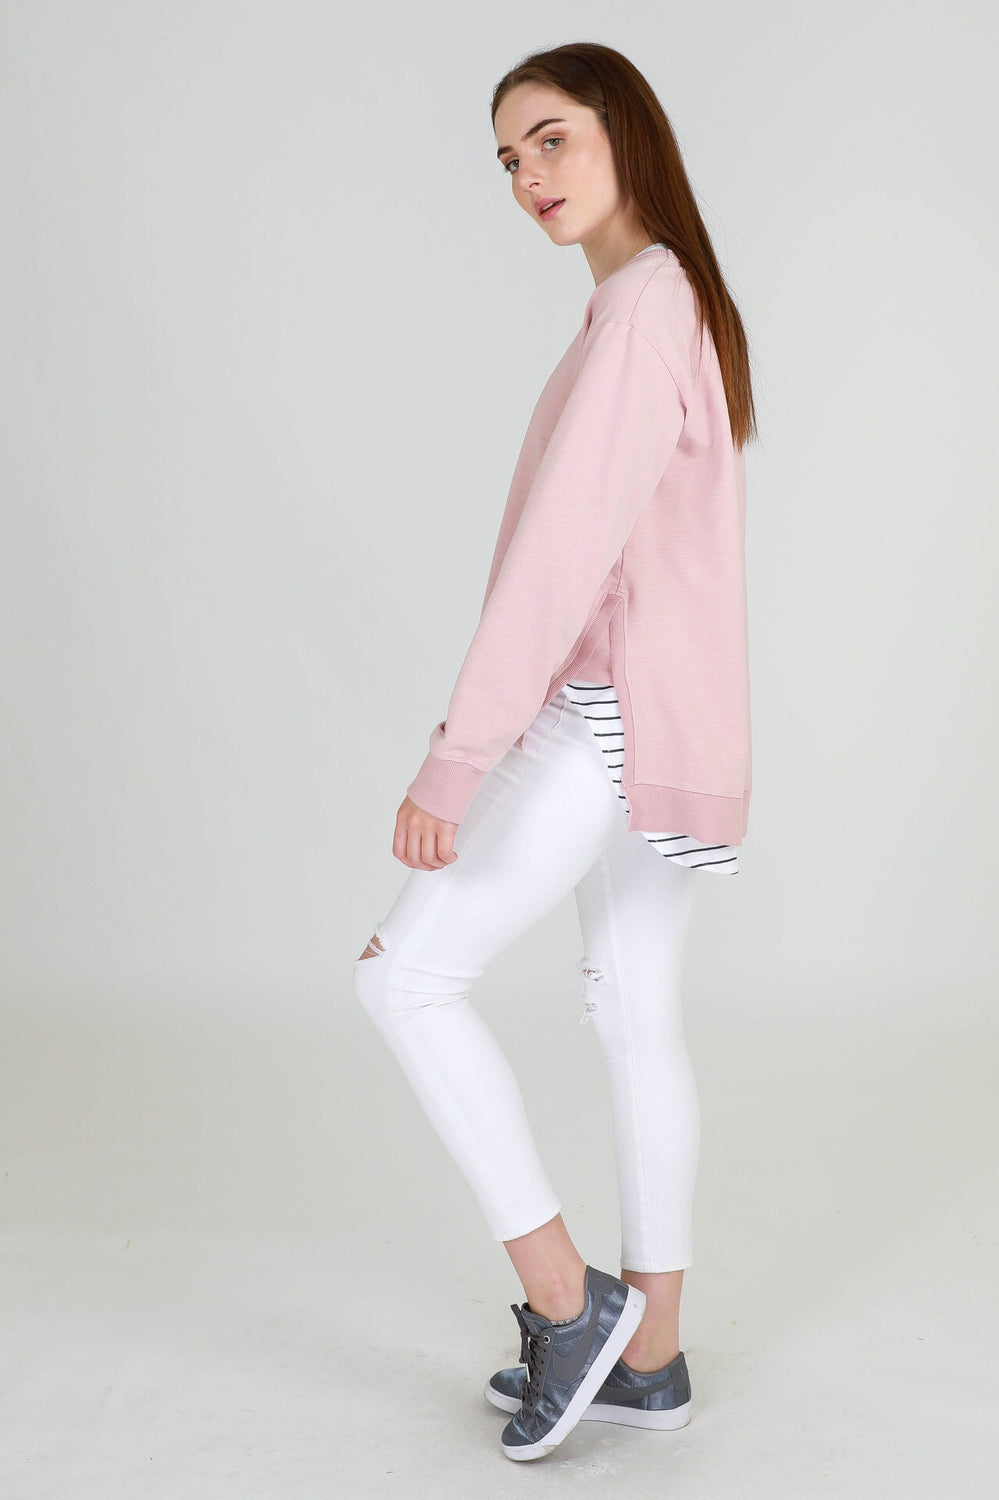 Ulverstone Sweater - Blush Marle